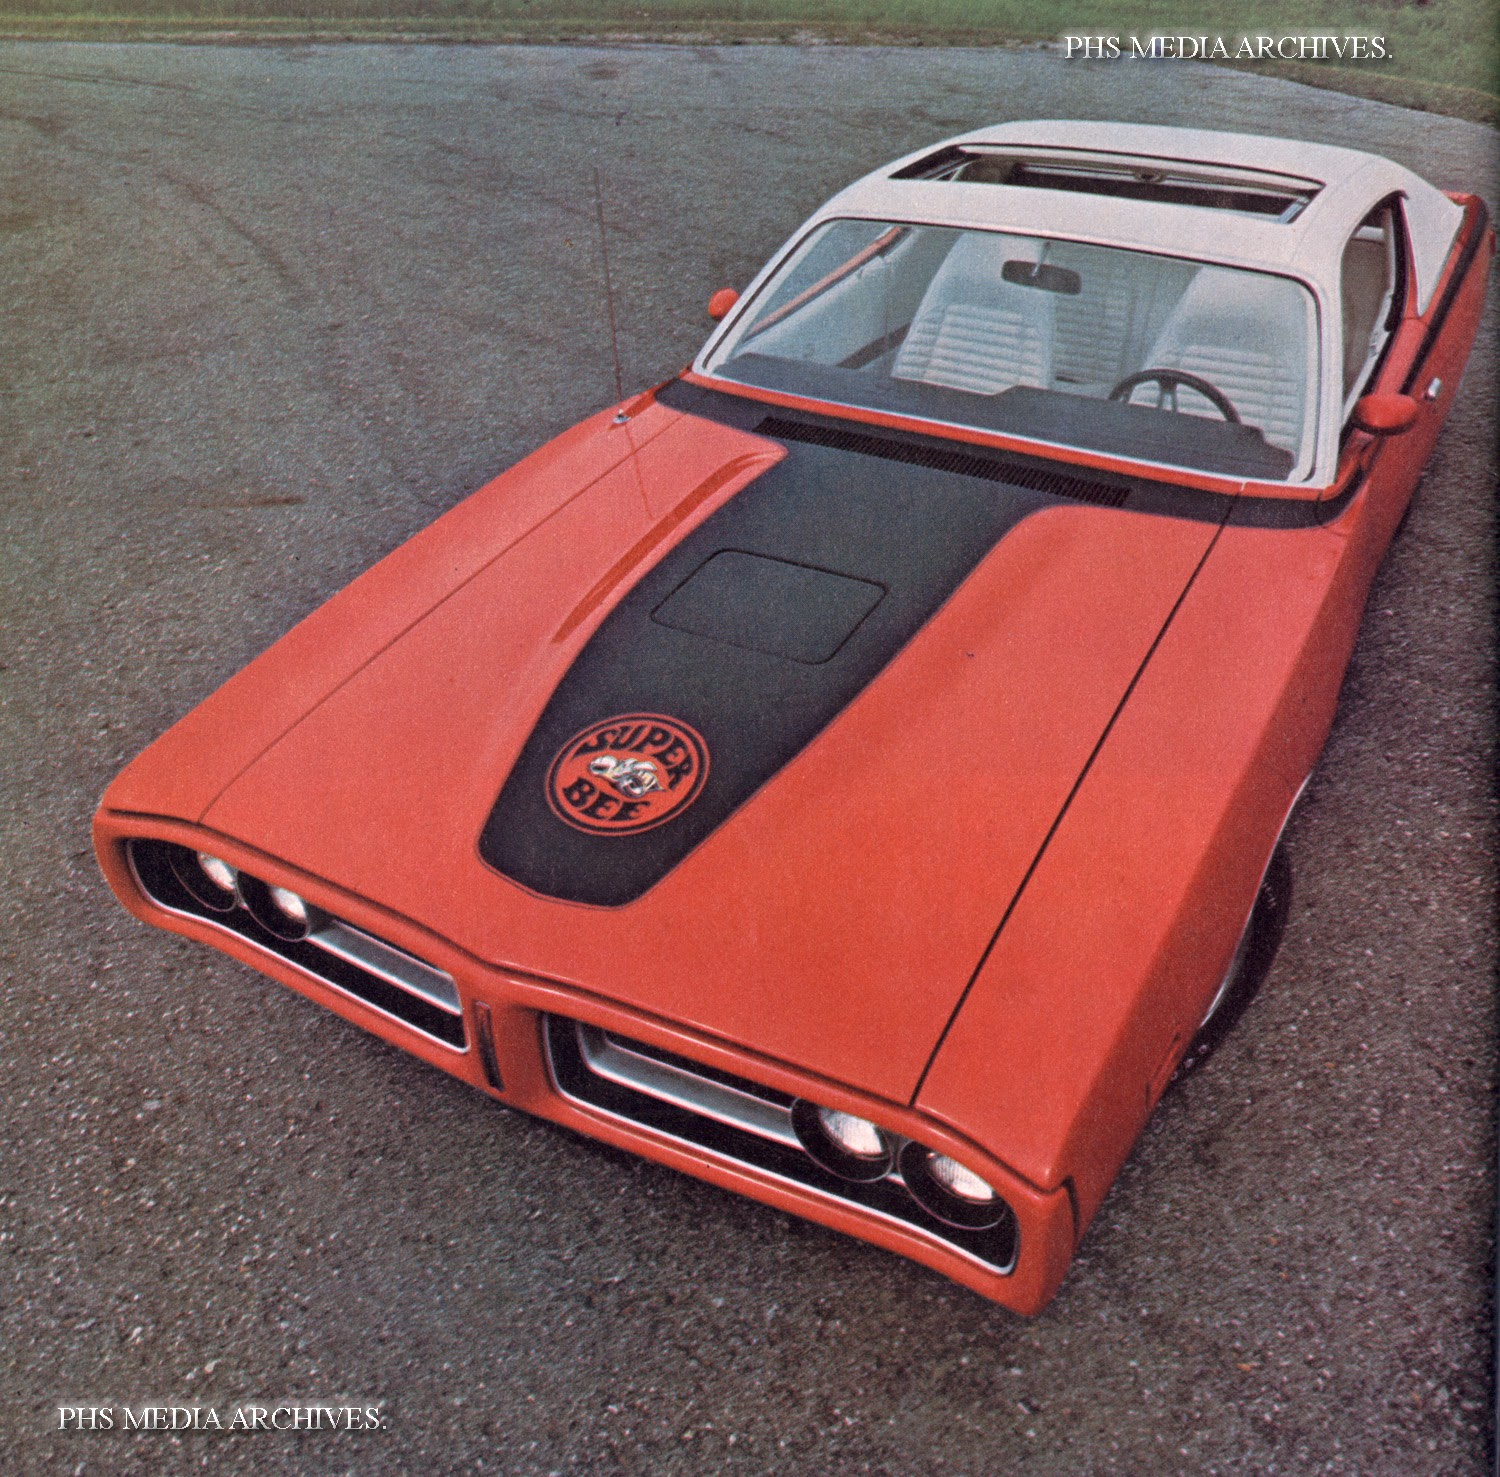 The superbee was in its last year and went out in style with the charger shell note rare sunroof